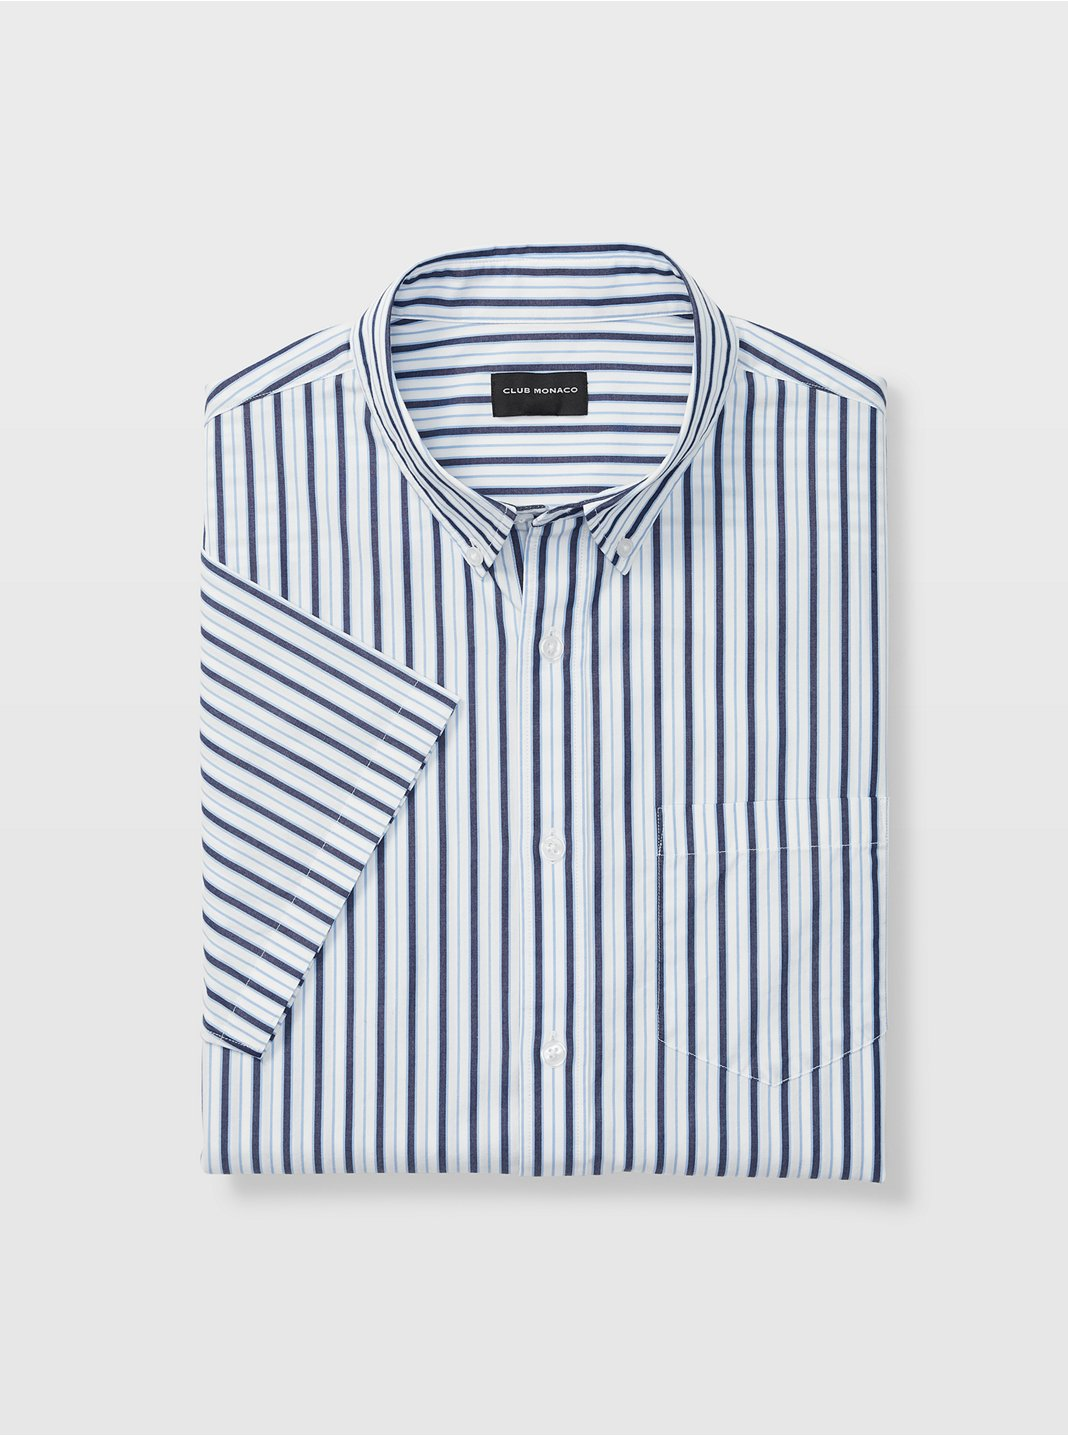 Slim Stripe Short-Sleeve Shirt